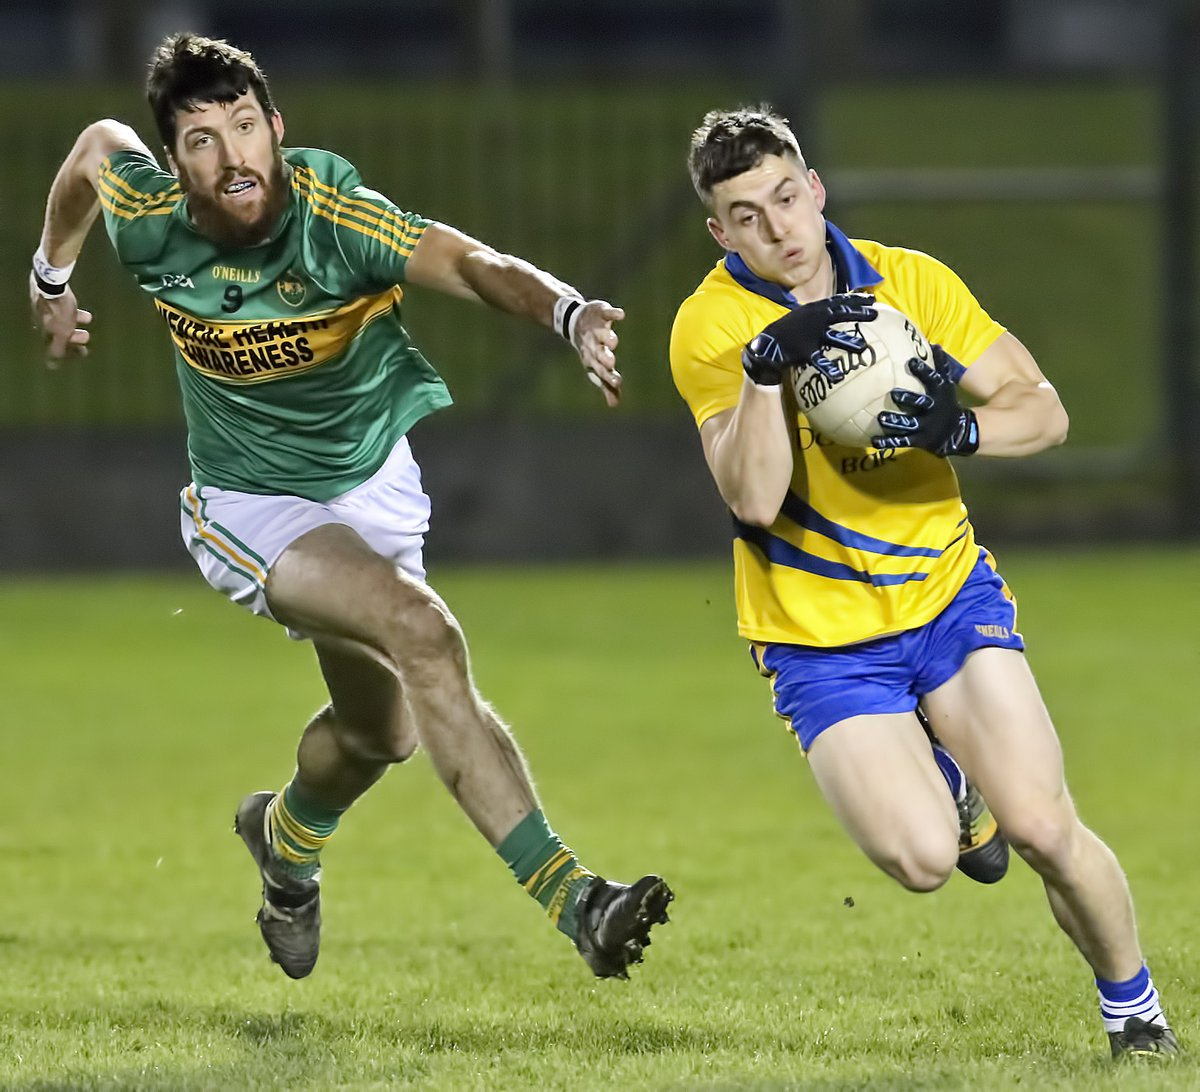 Intriguing County Senior football Final in store on Sunday evening